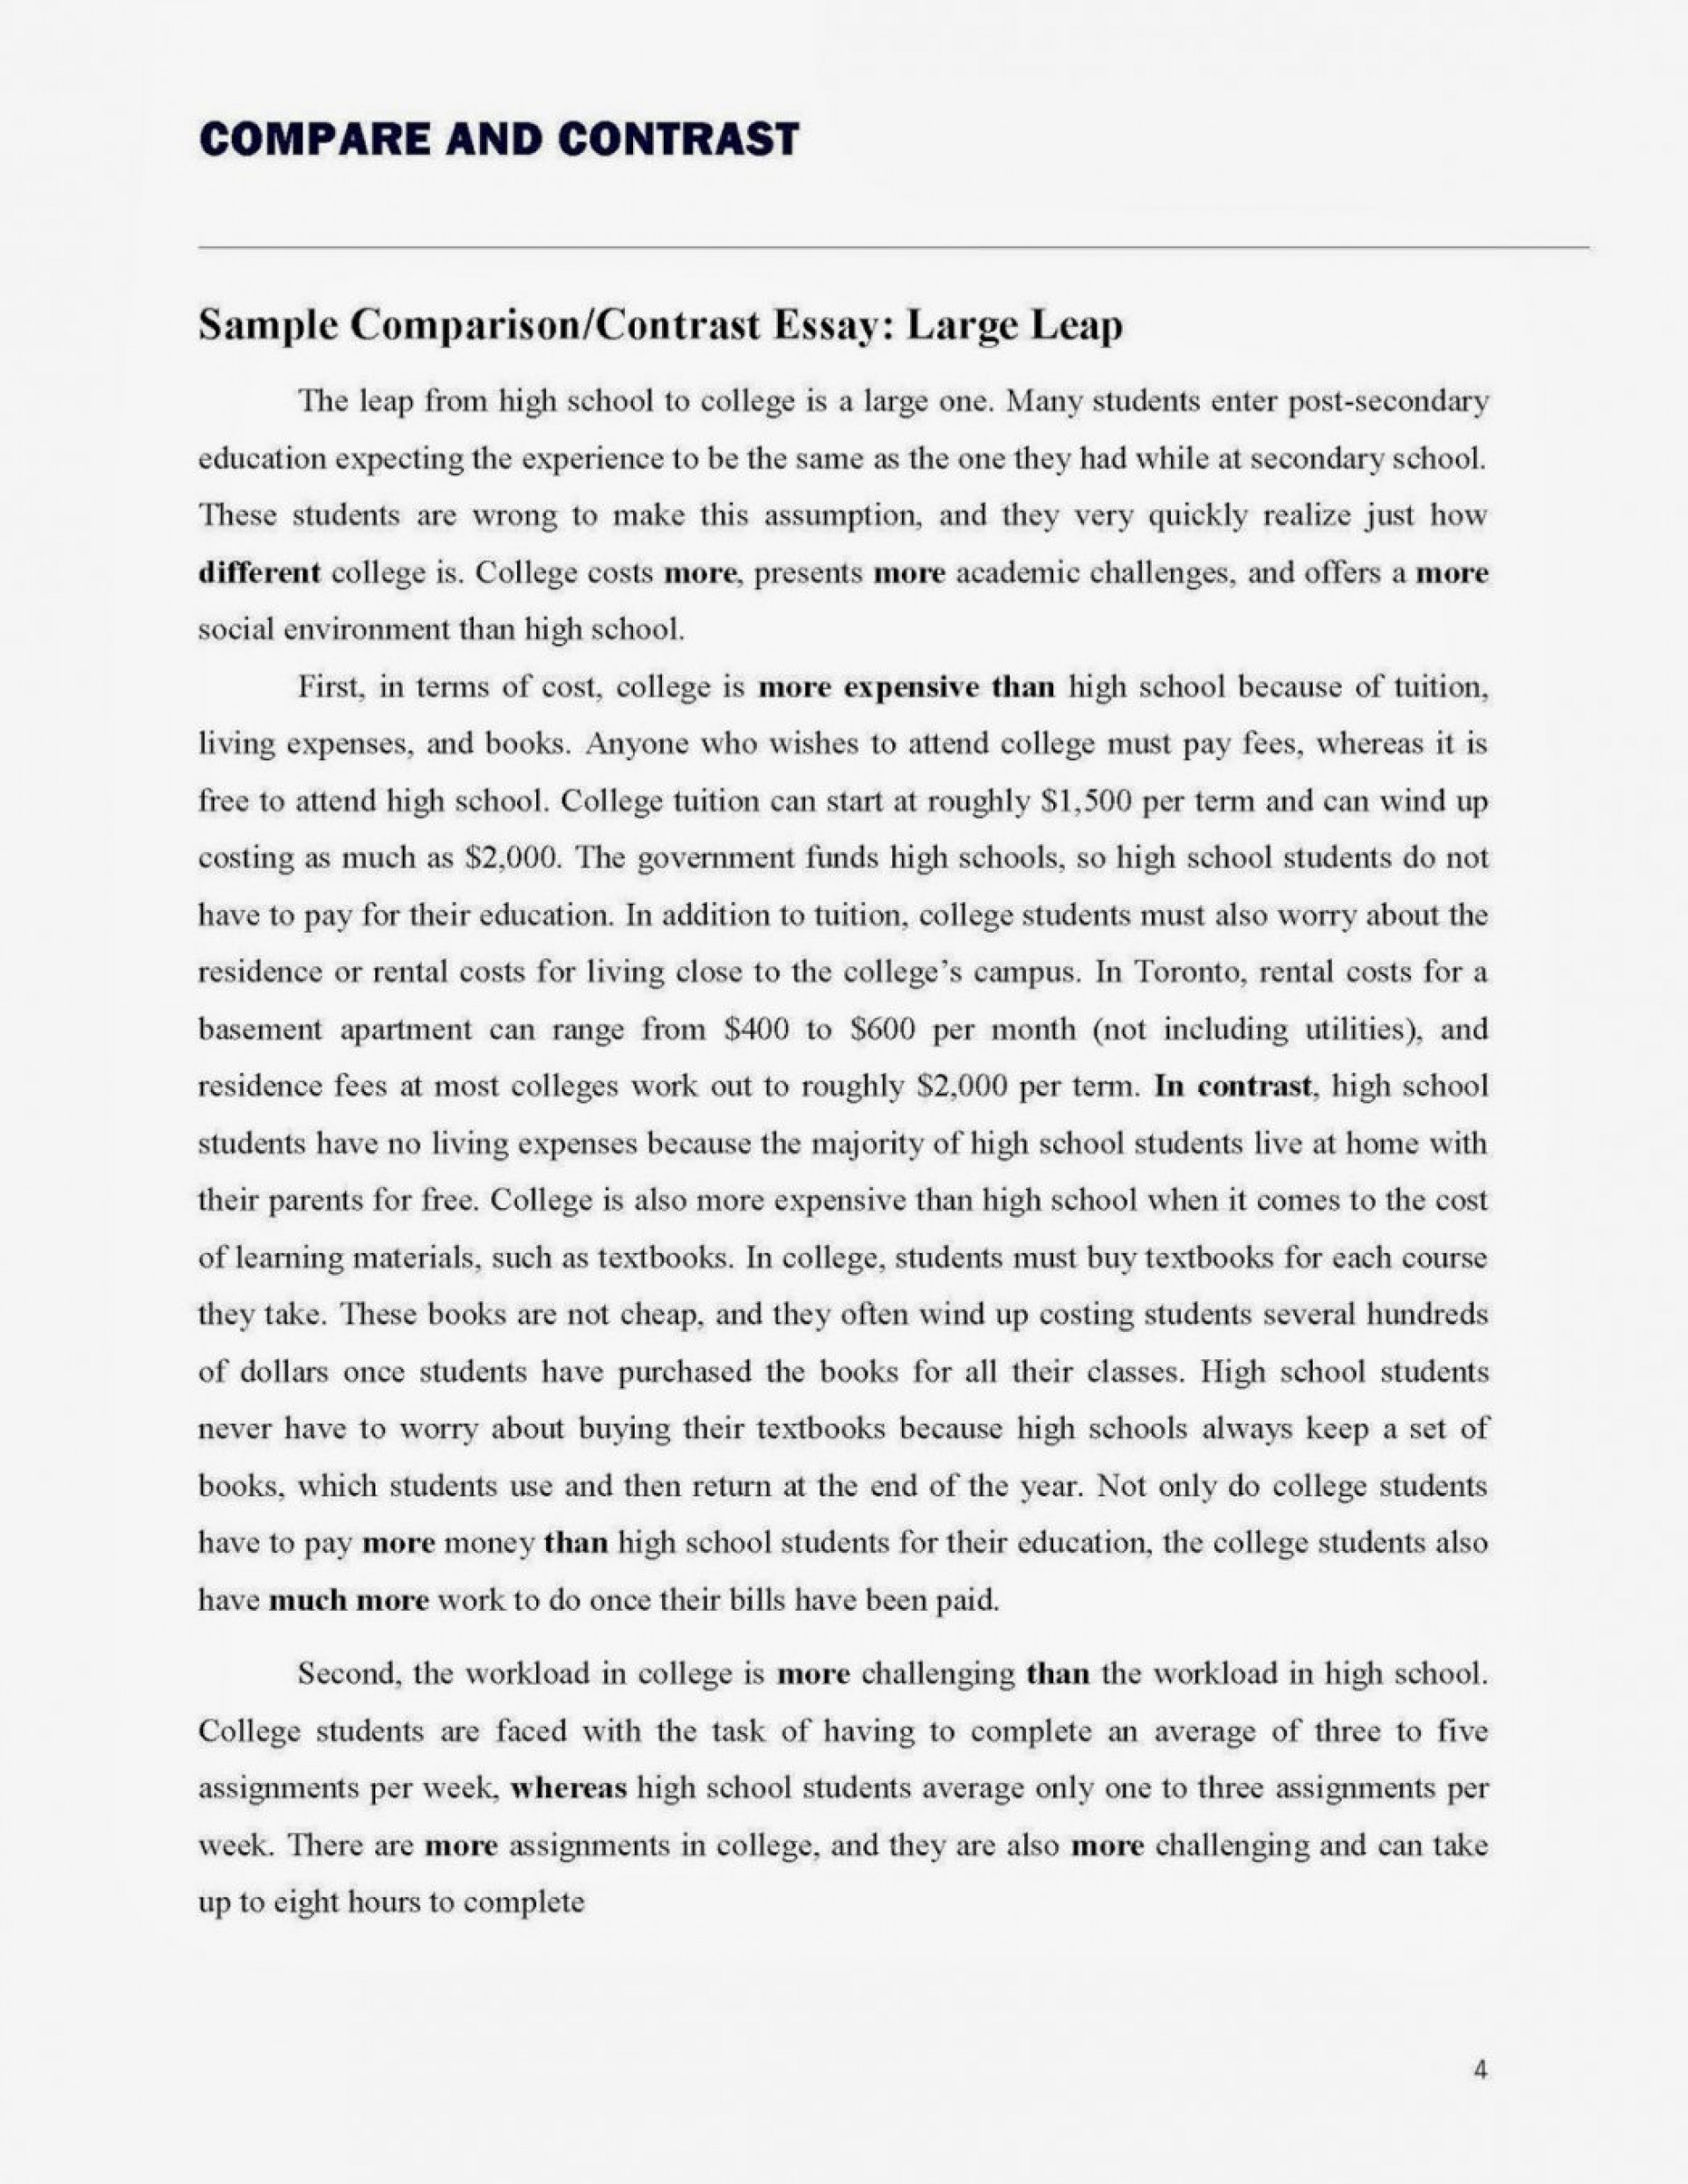 017 Comparison Essay Topic Compare Contrast Prompts College English T Level Topics Composition Samples For Students Pdfamples Argumentative Persuasive Freshman 1048x1356 Incredible Thesis Statement Toefl High School 1920